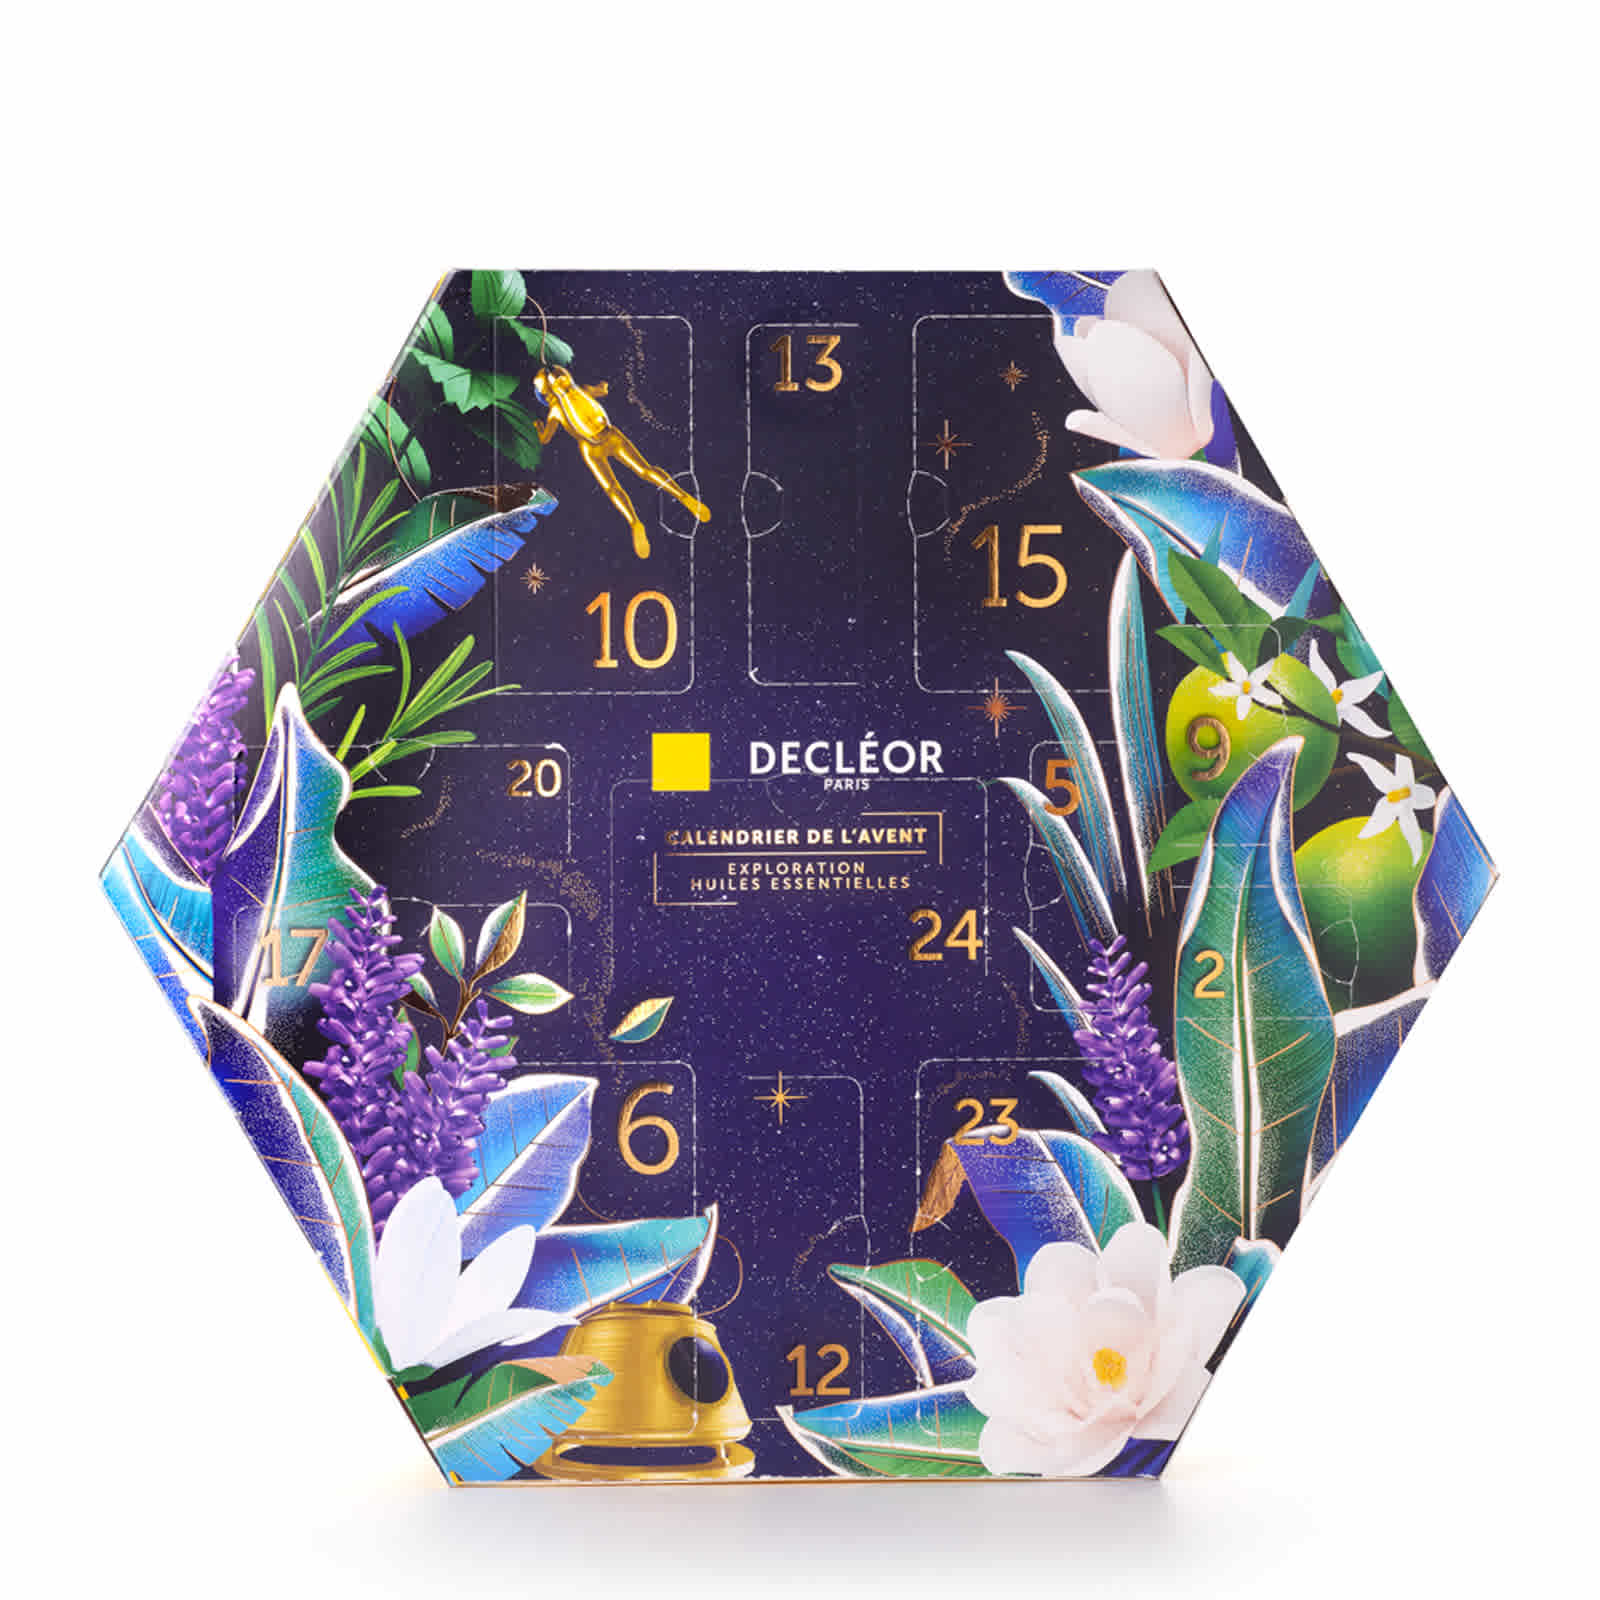 DECLÉOR Christmas Essential Oils Advent Calendar